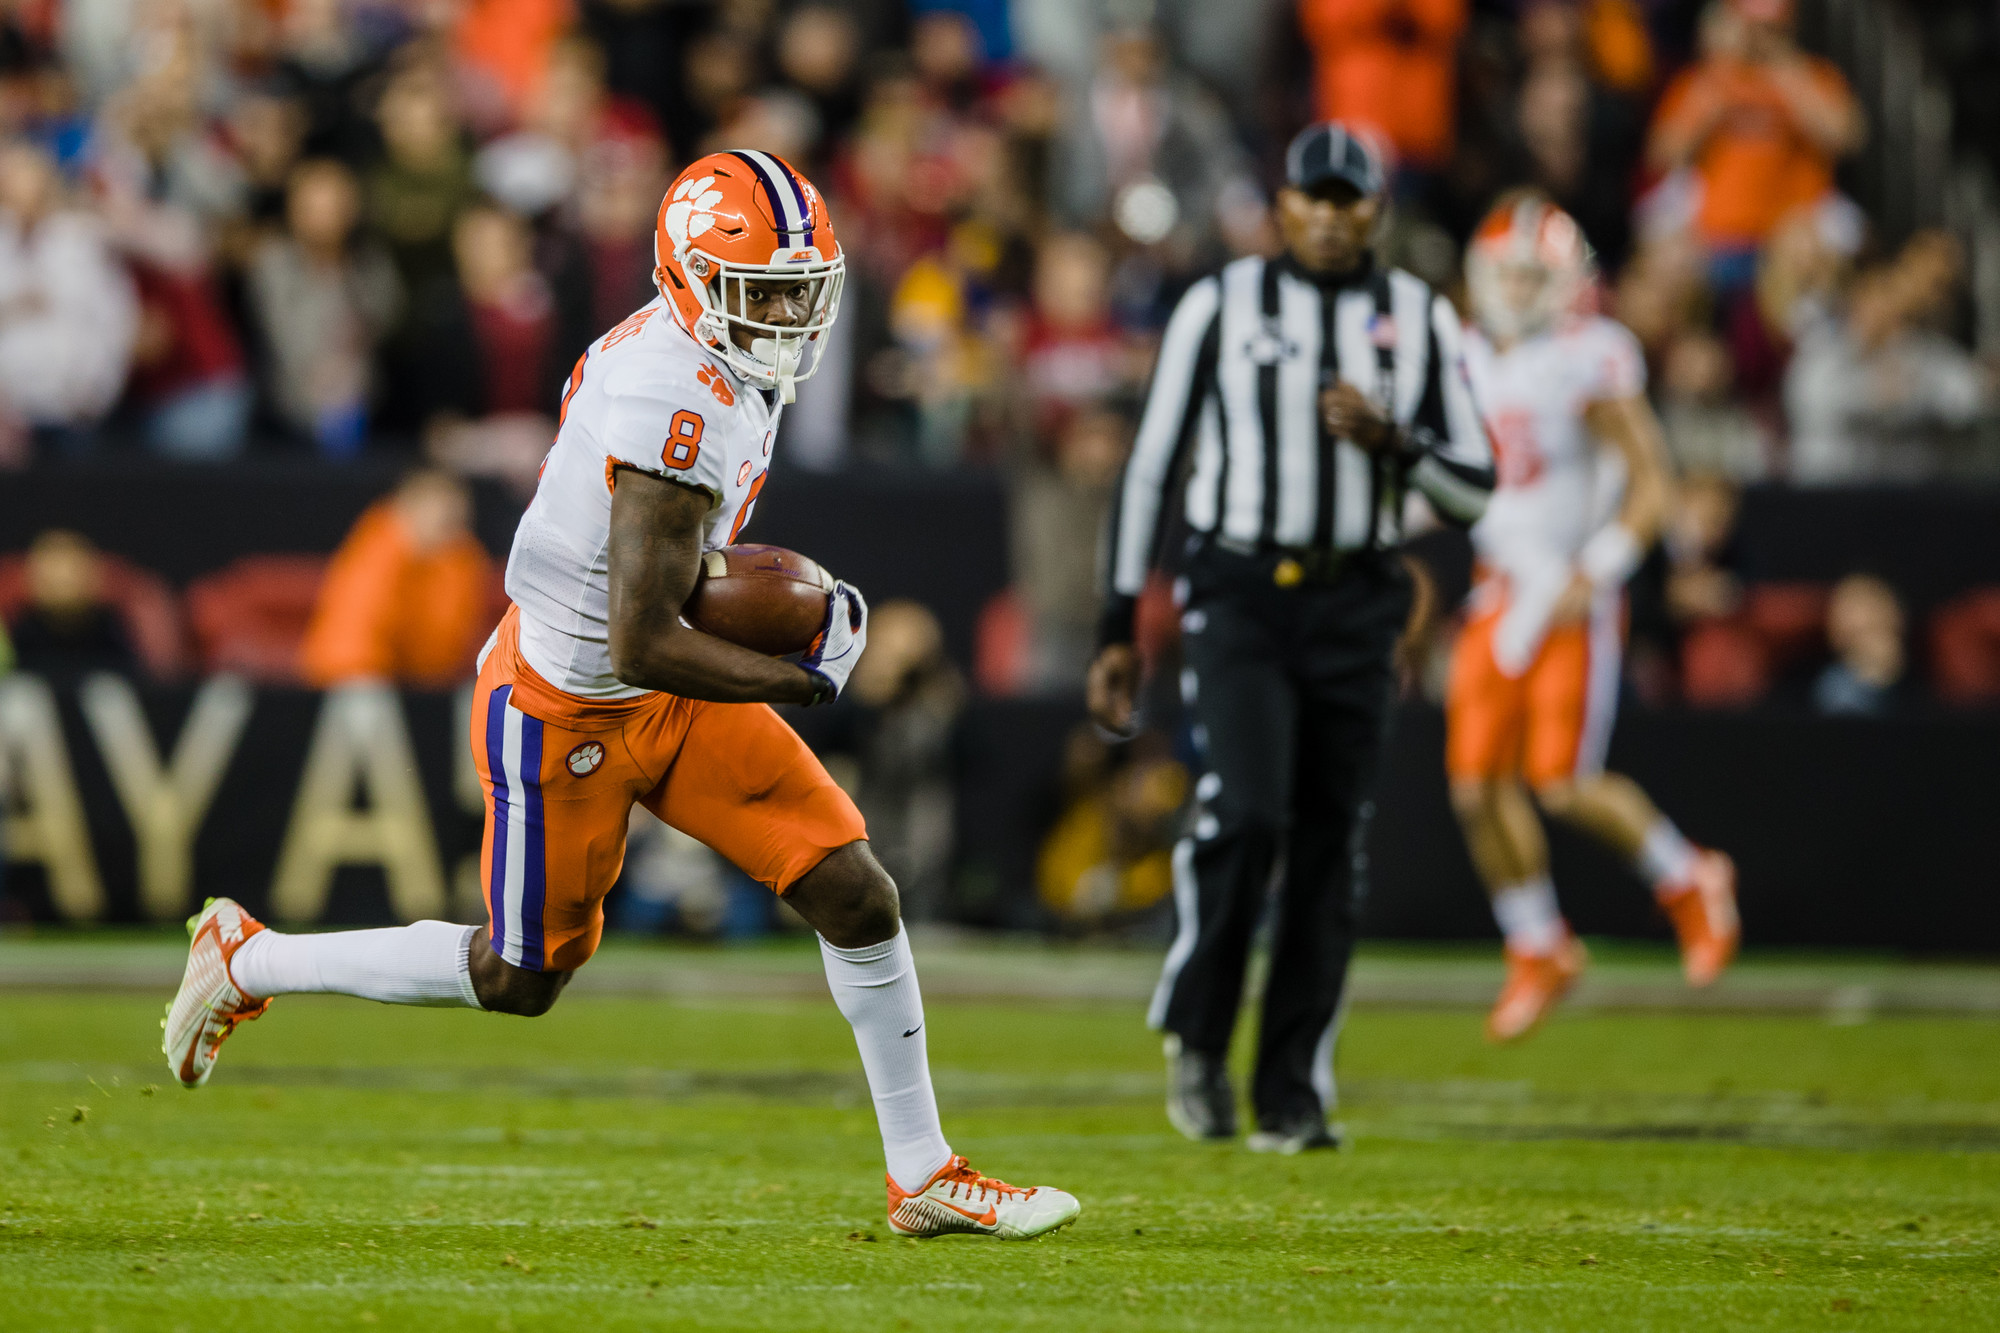 Clemson wide receiver Justyn Ross runs the ball after a reception in the second half of the CFP National Championship game at Levi's Stadium in Santa Clara, California, on Monday, Jan. 7. Clemson  beat Alabama 44-16.